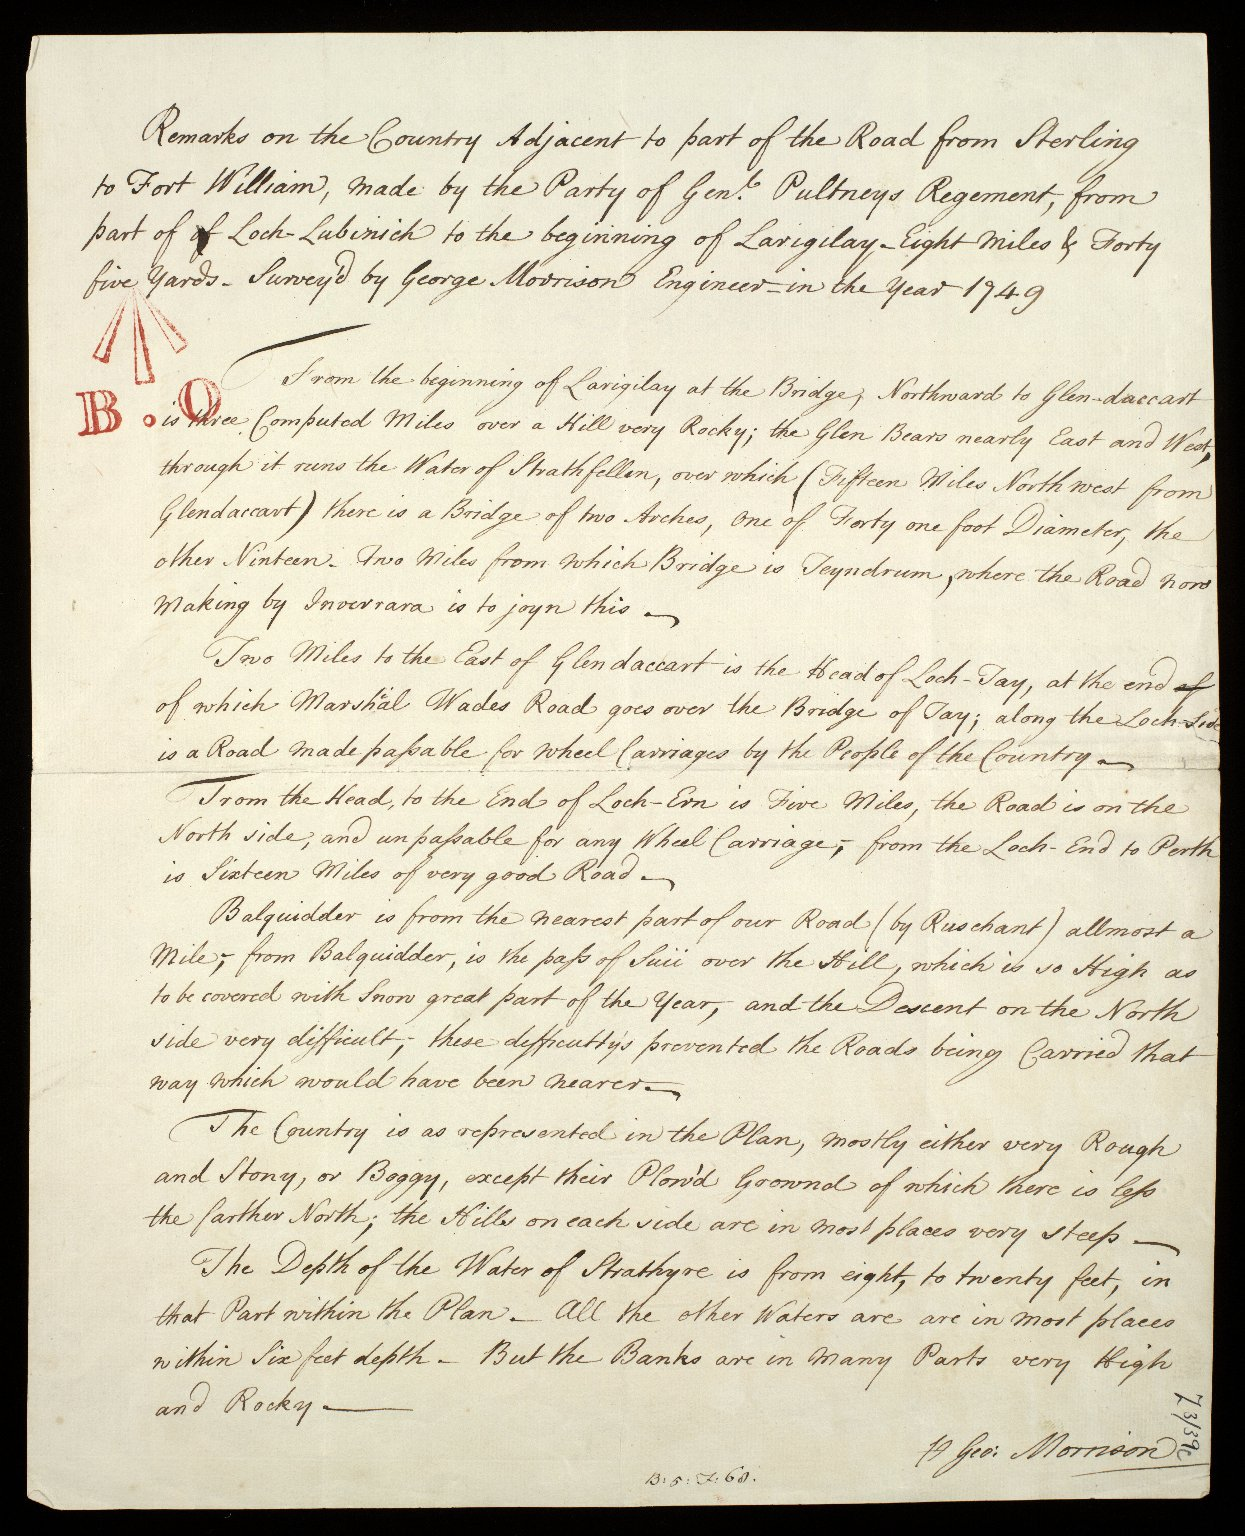 Remarks on the Country Adjacent to part of the Road from Sterling to Fort William, made by the Party of Genl. Pultneys Regement, from part of Loch Lubinich to the beginning of Larigilay. Eight Miles and Forty five Yards [1 of 2]